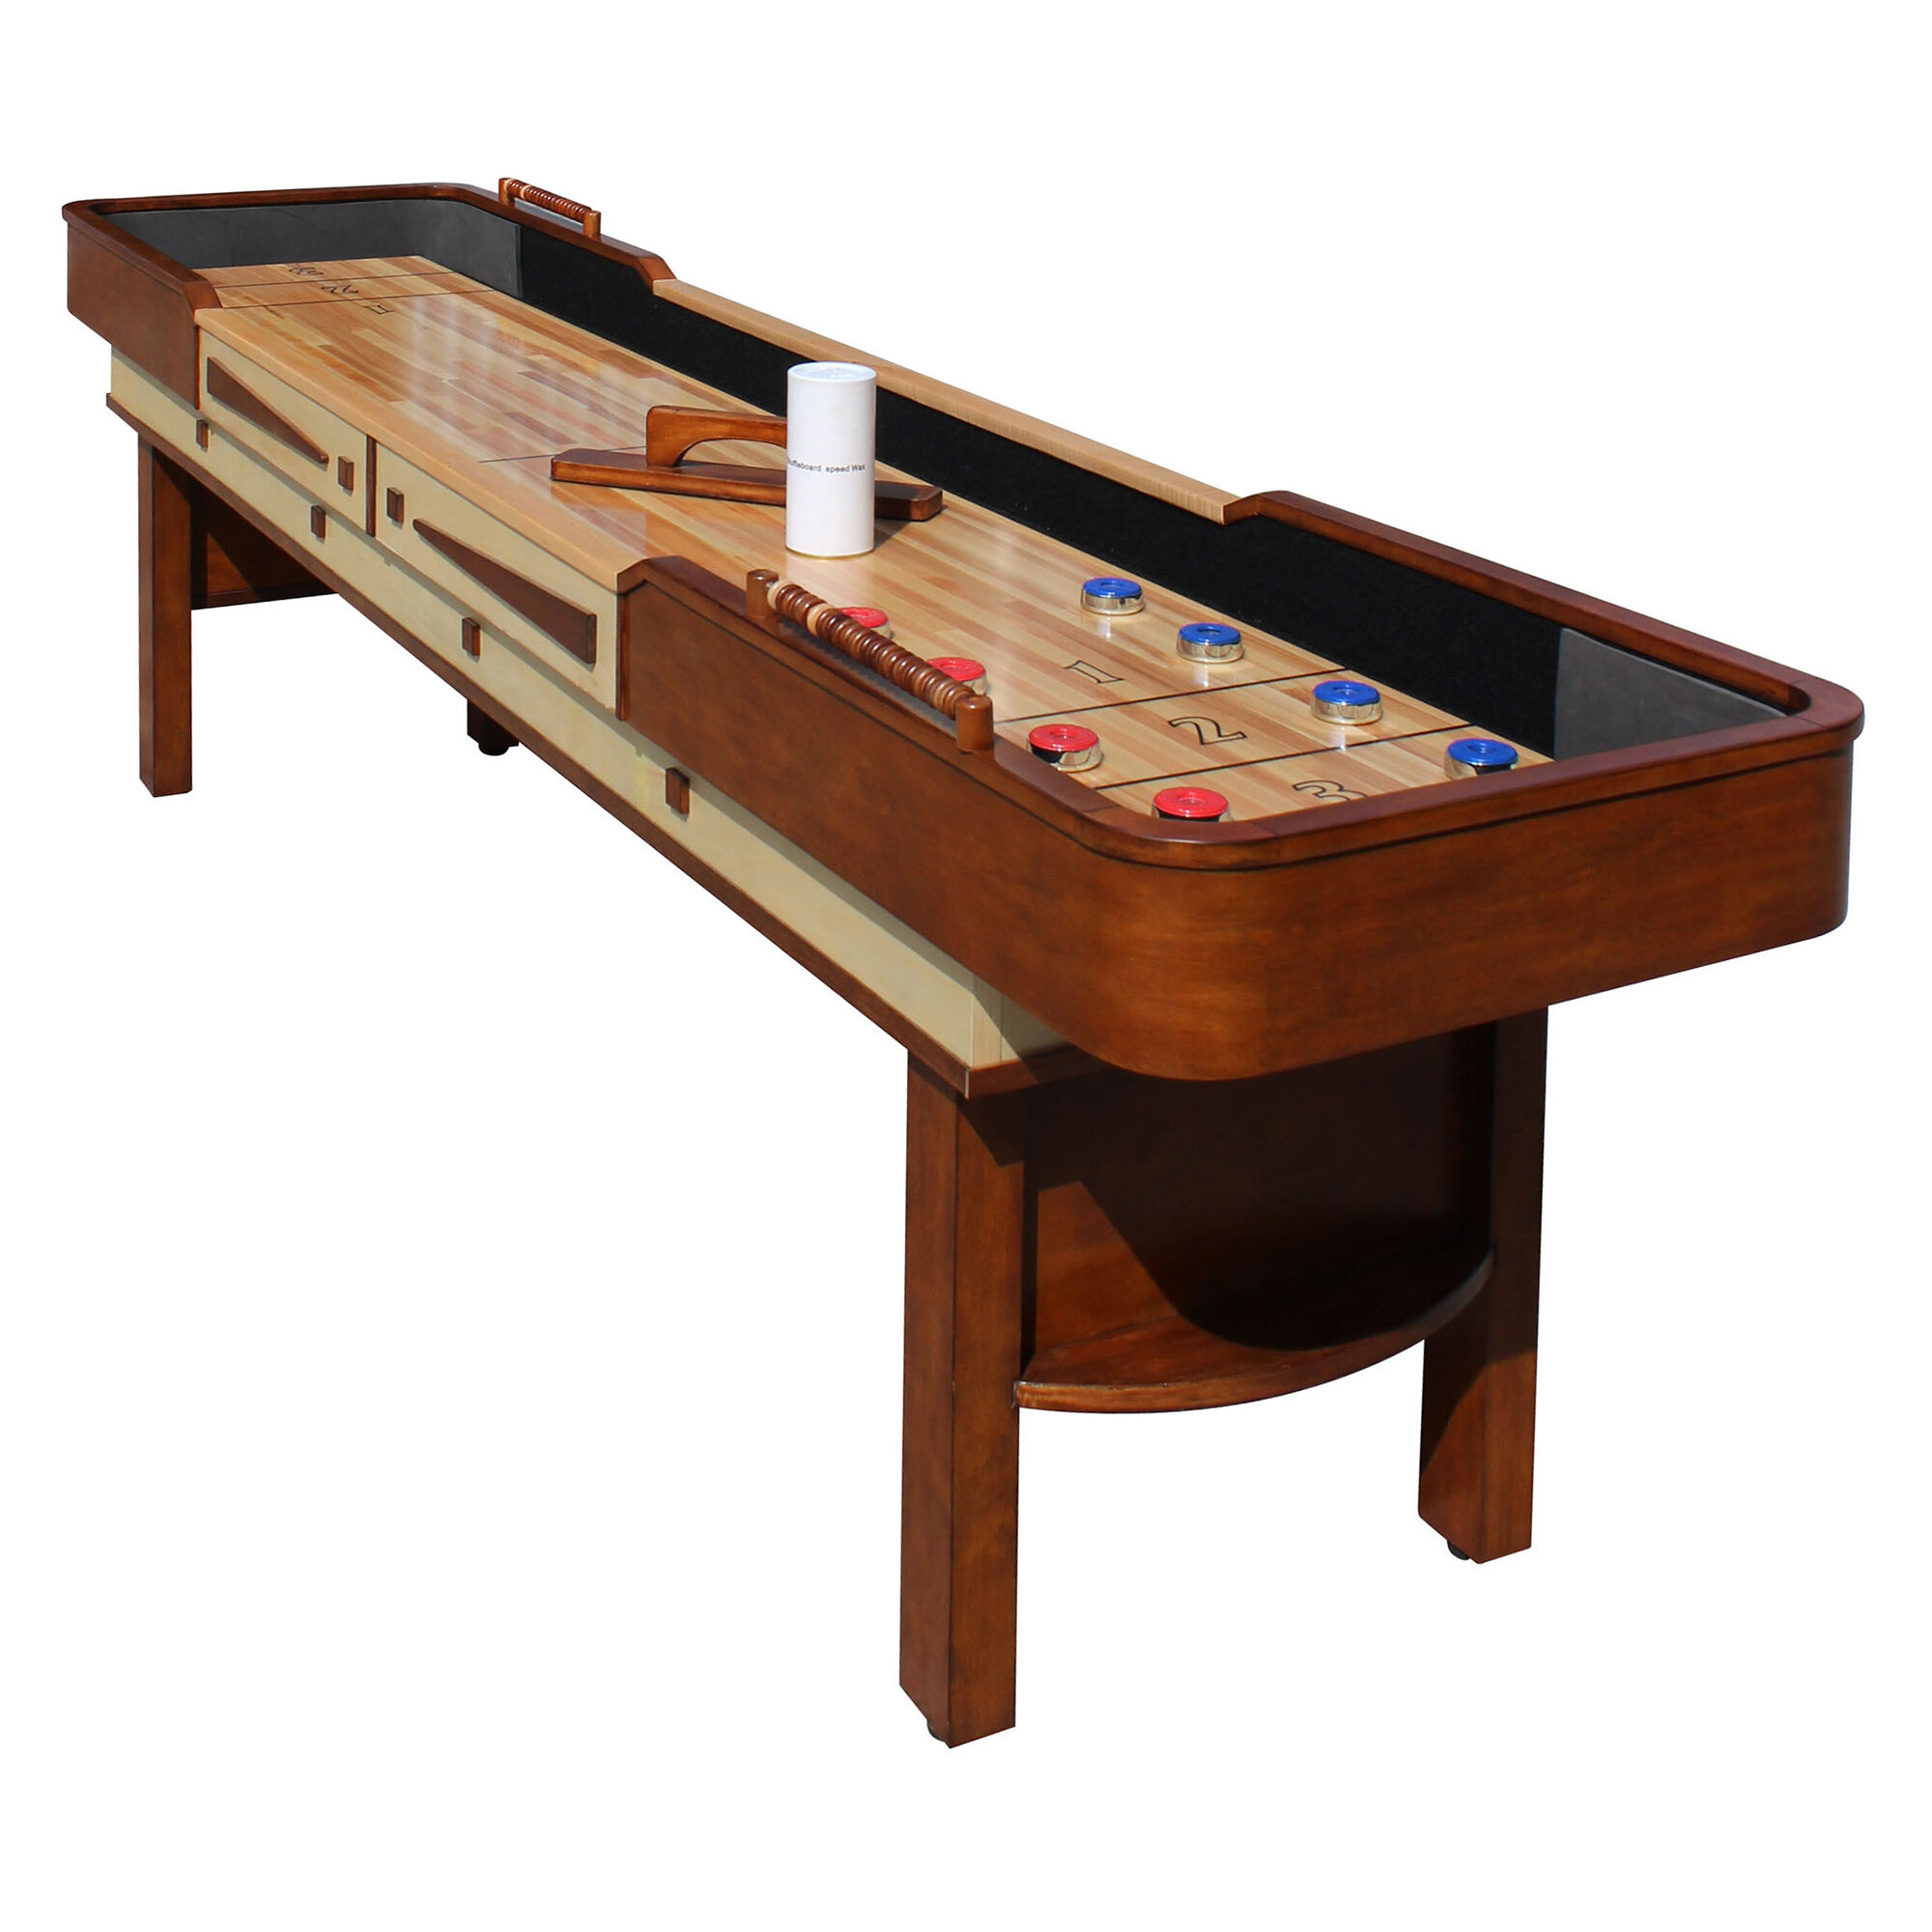 ibs style shuffleboard table loria on click to series iv thumbnail zoom awards presidential top